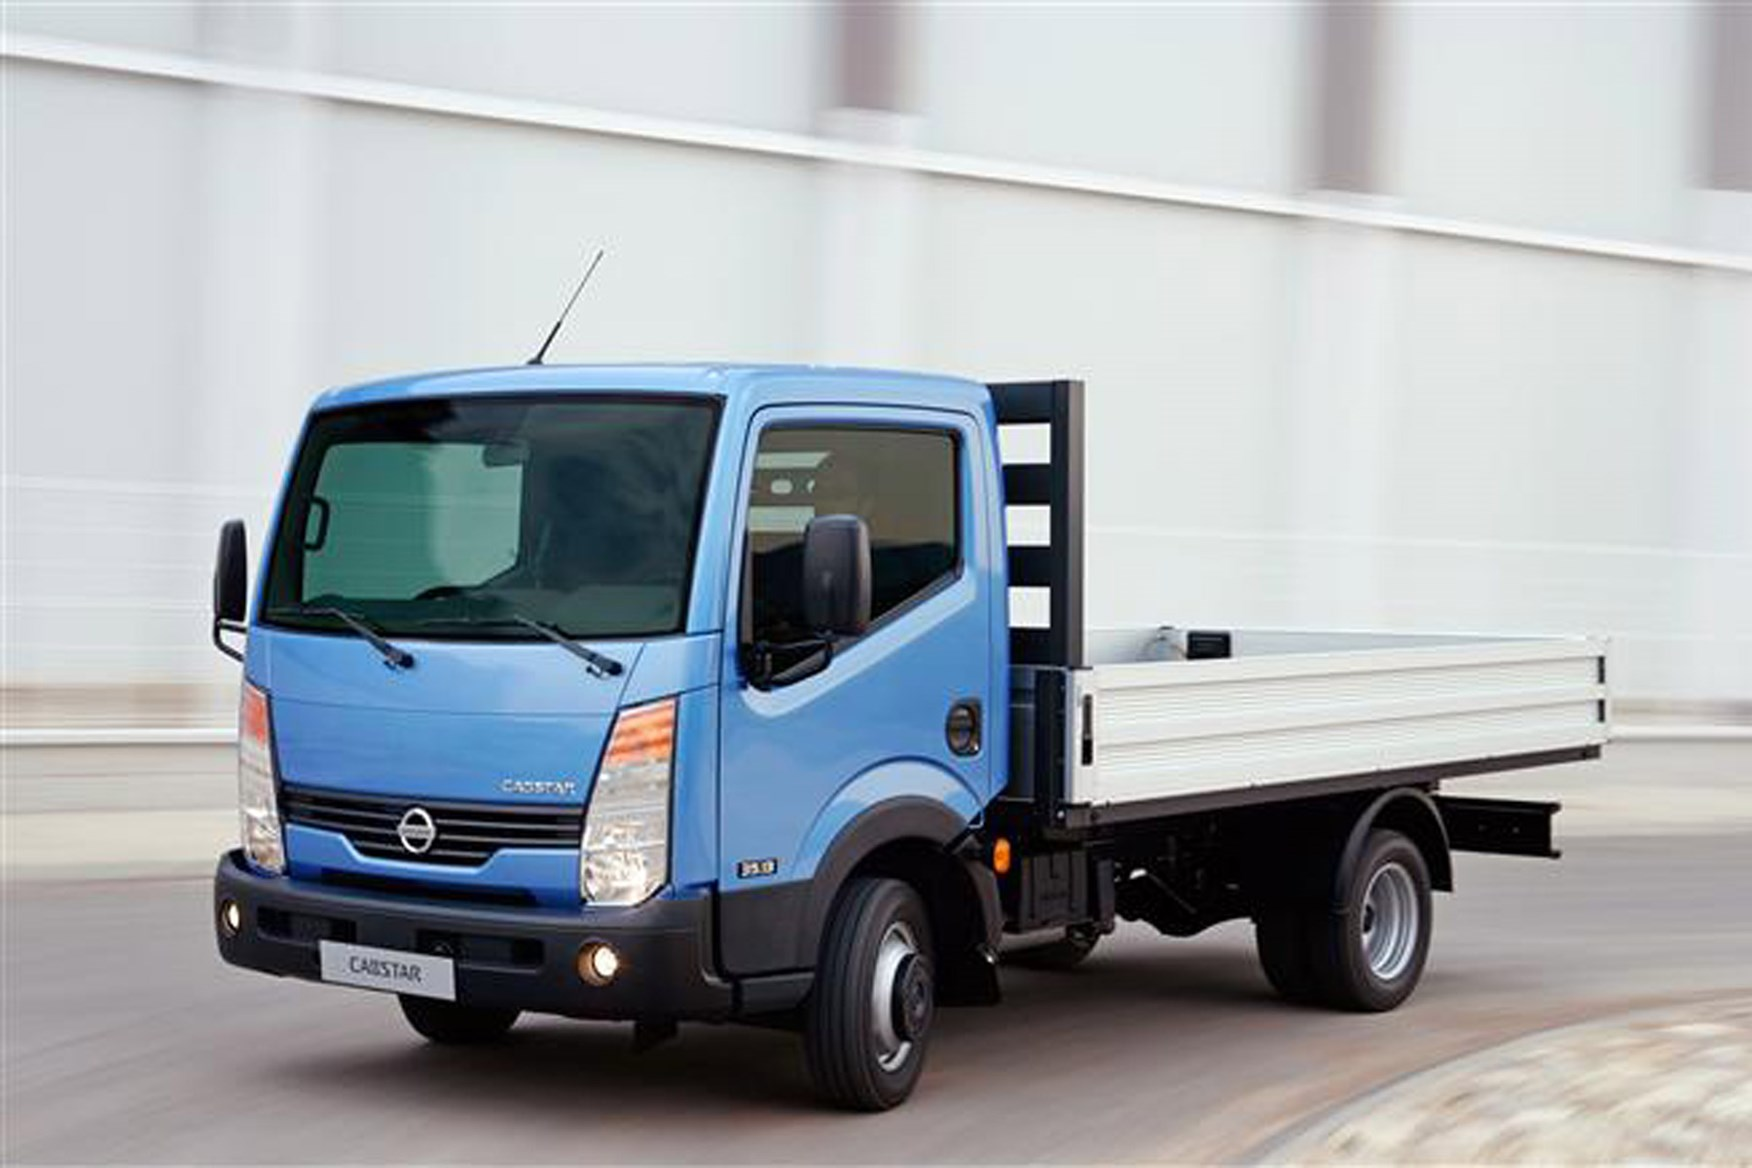 Nissan Cabstar review on Parkers Vans - drop side model exterior